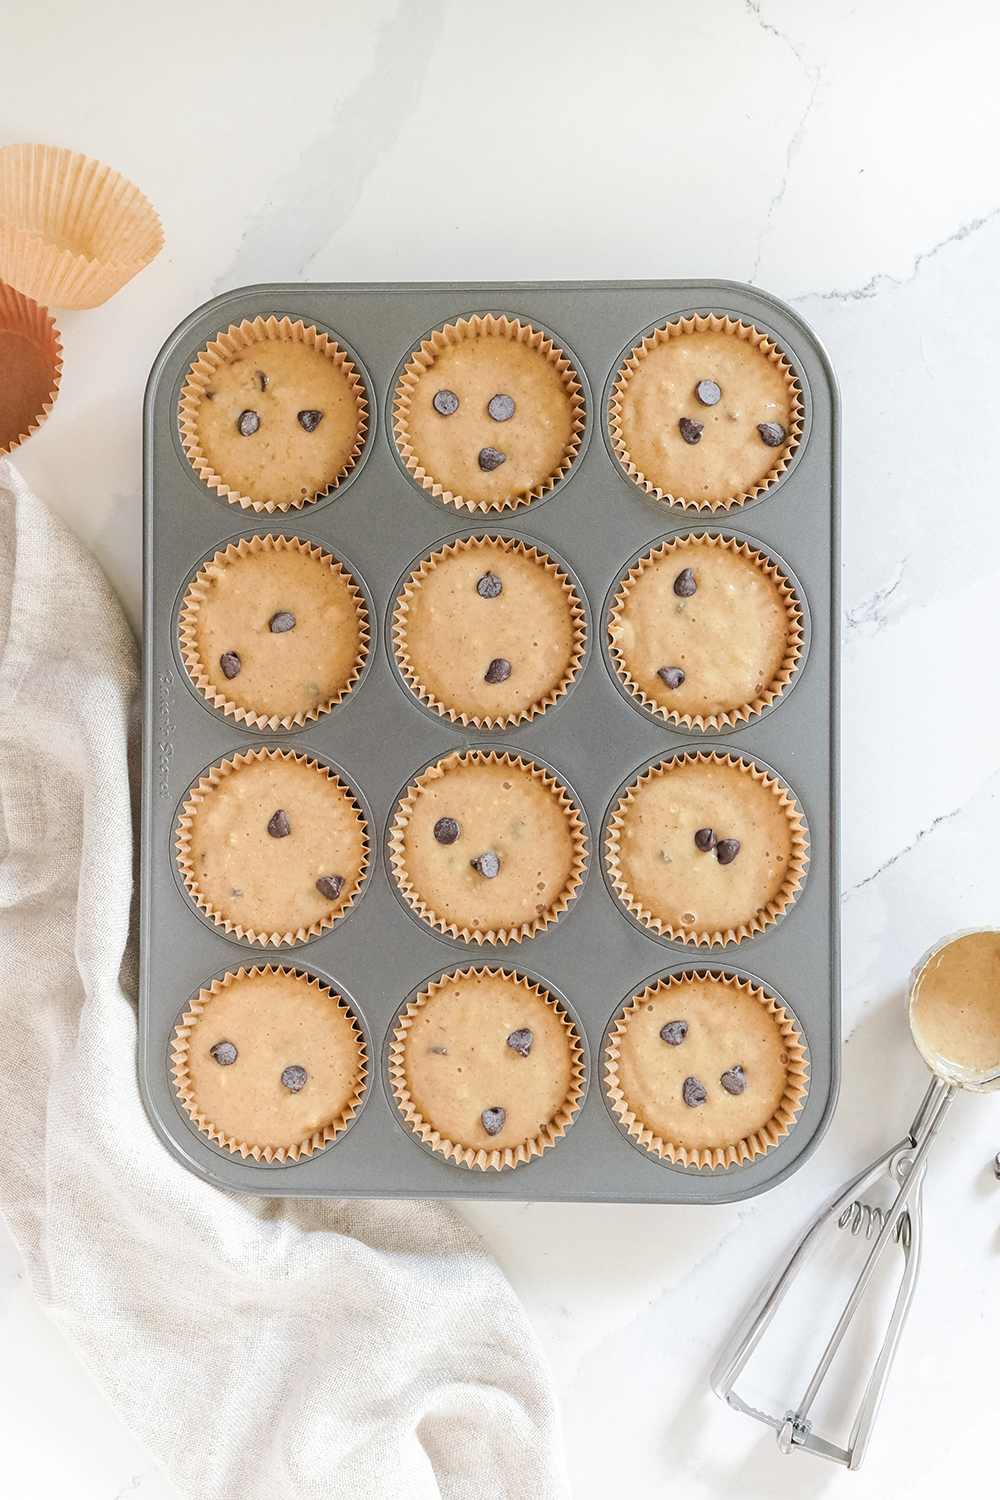 Uncooked Peanut Butter Banana Chocolate Chip Muffins in a baking tray